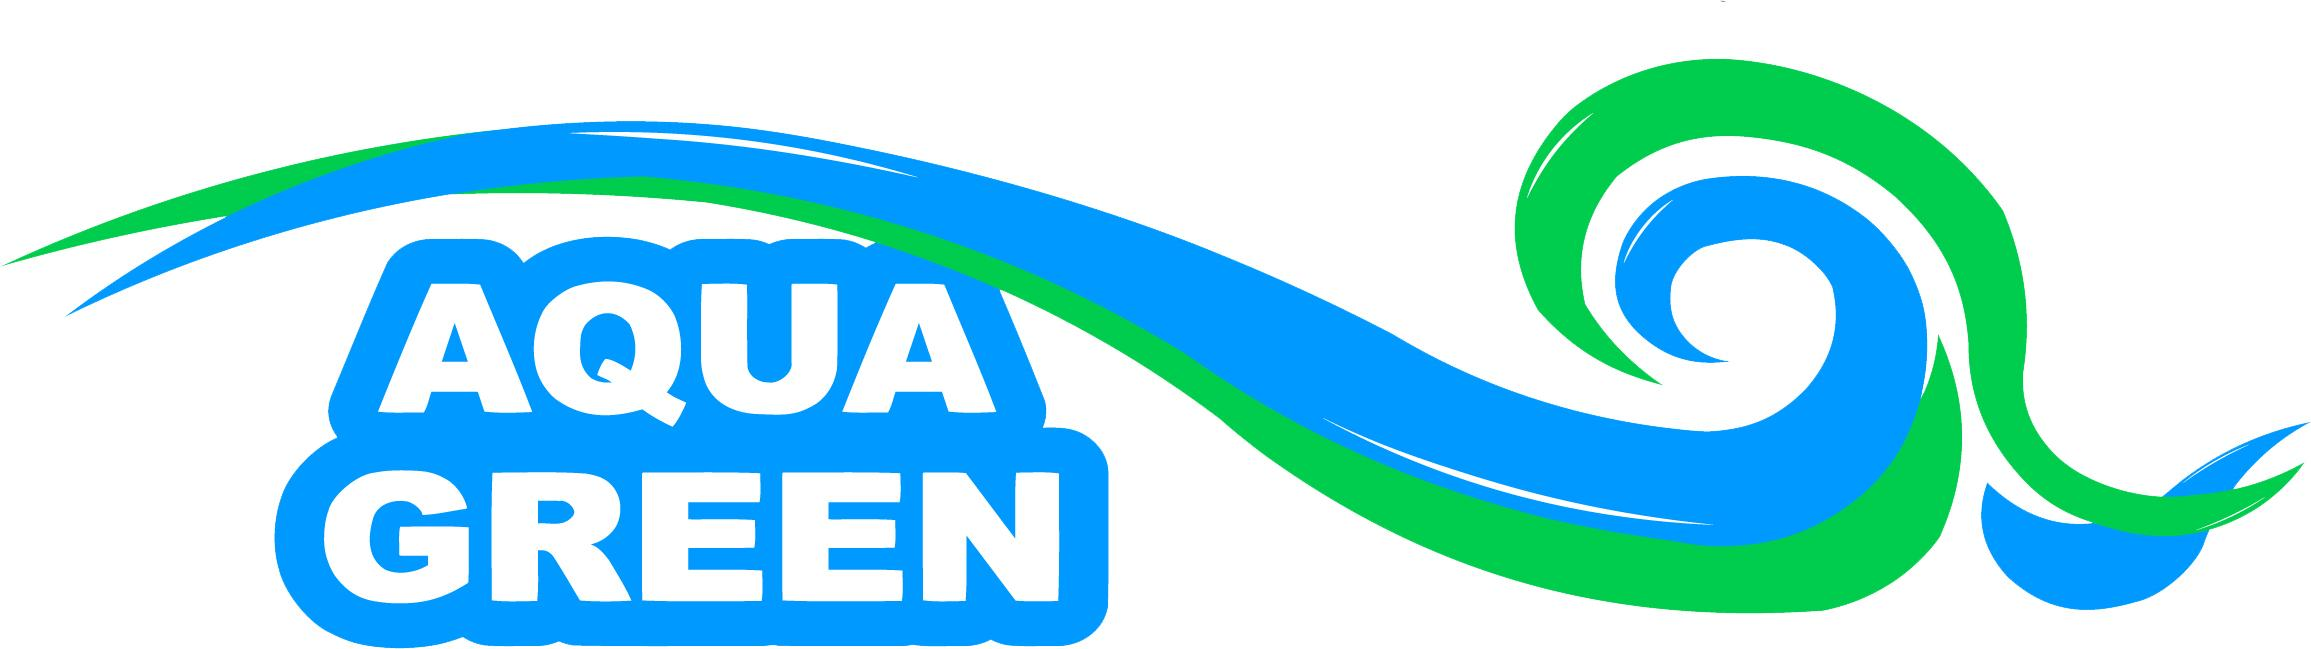 aquagreen logo_2